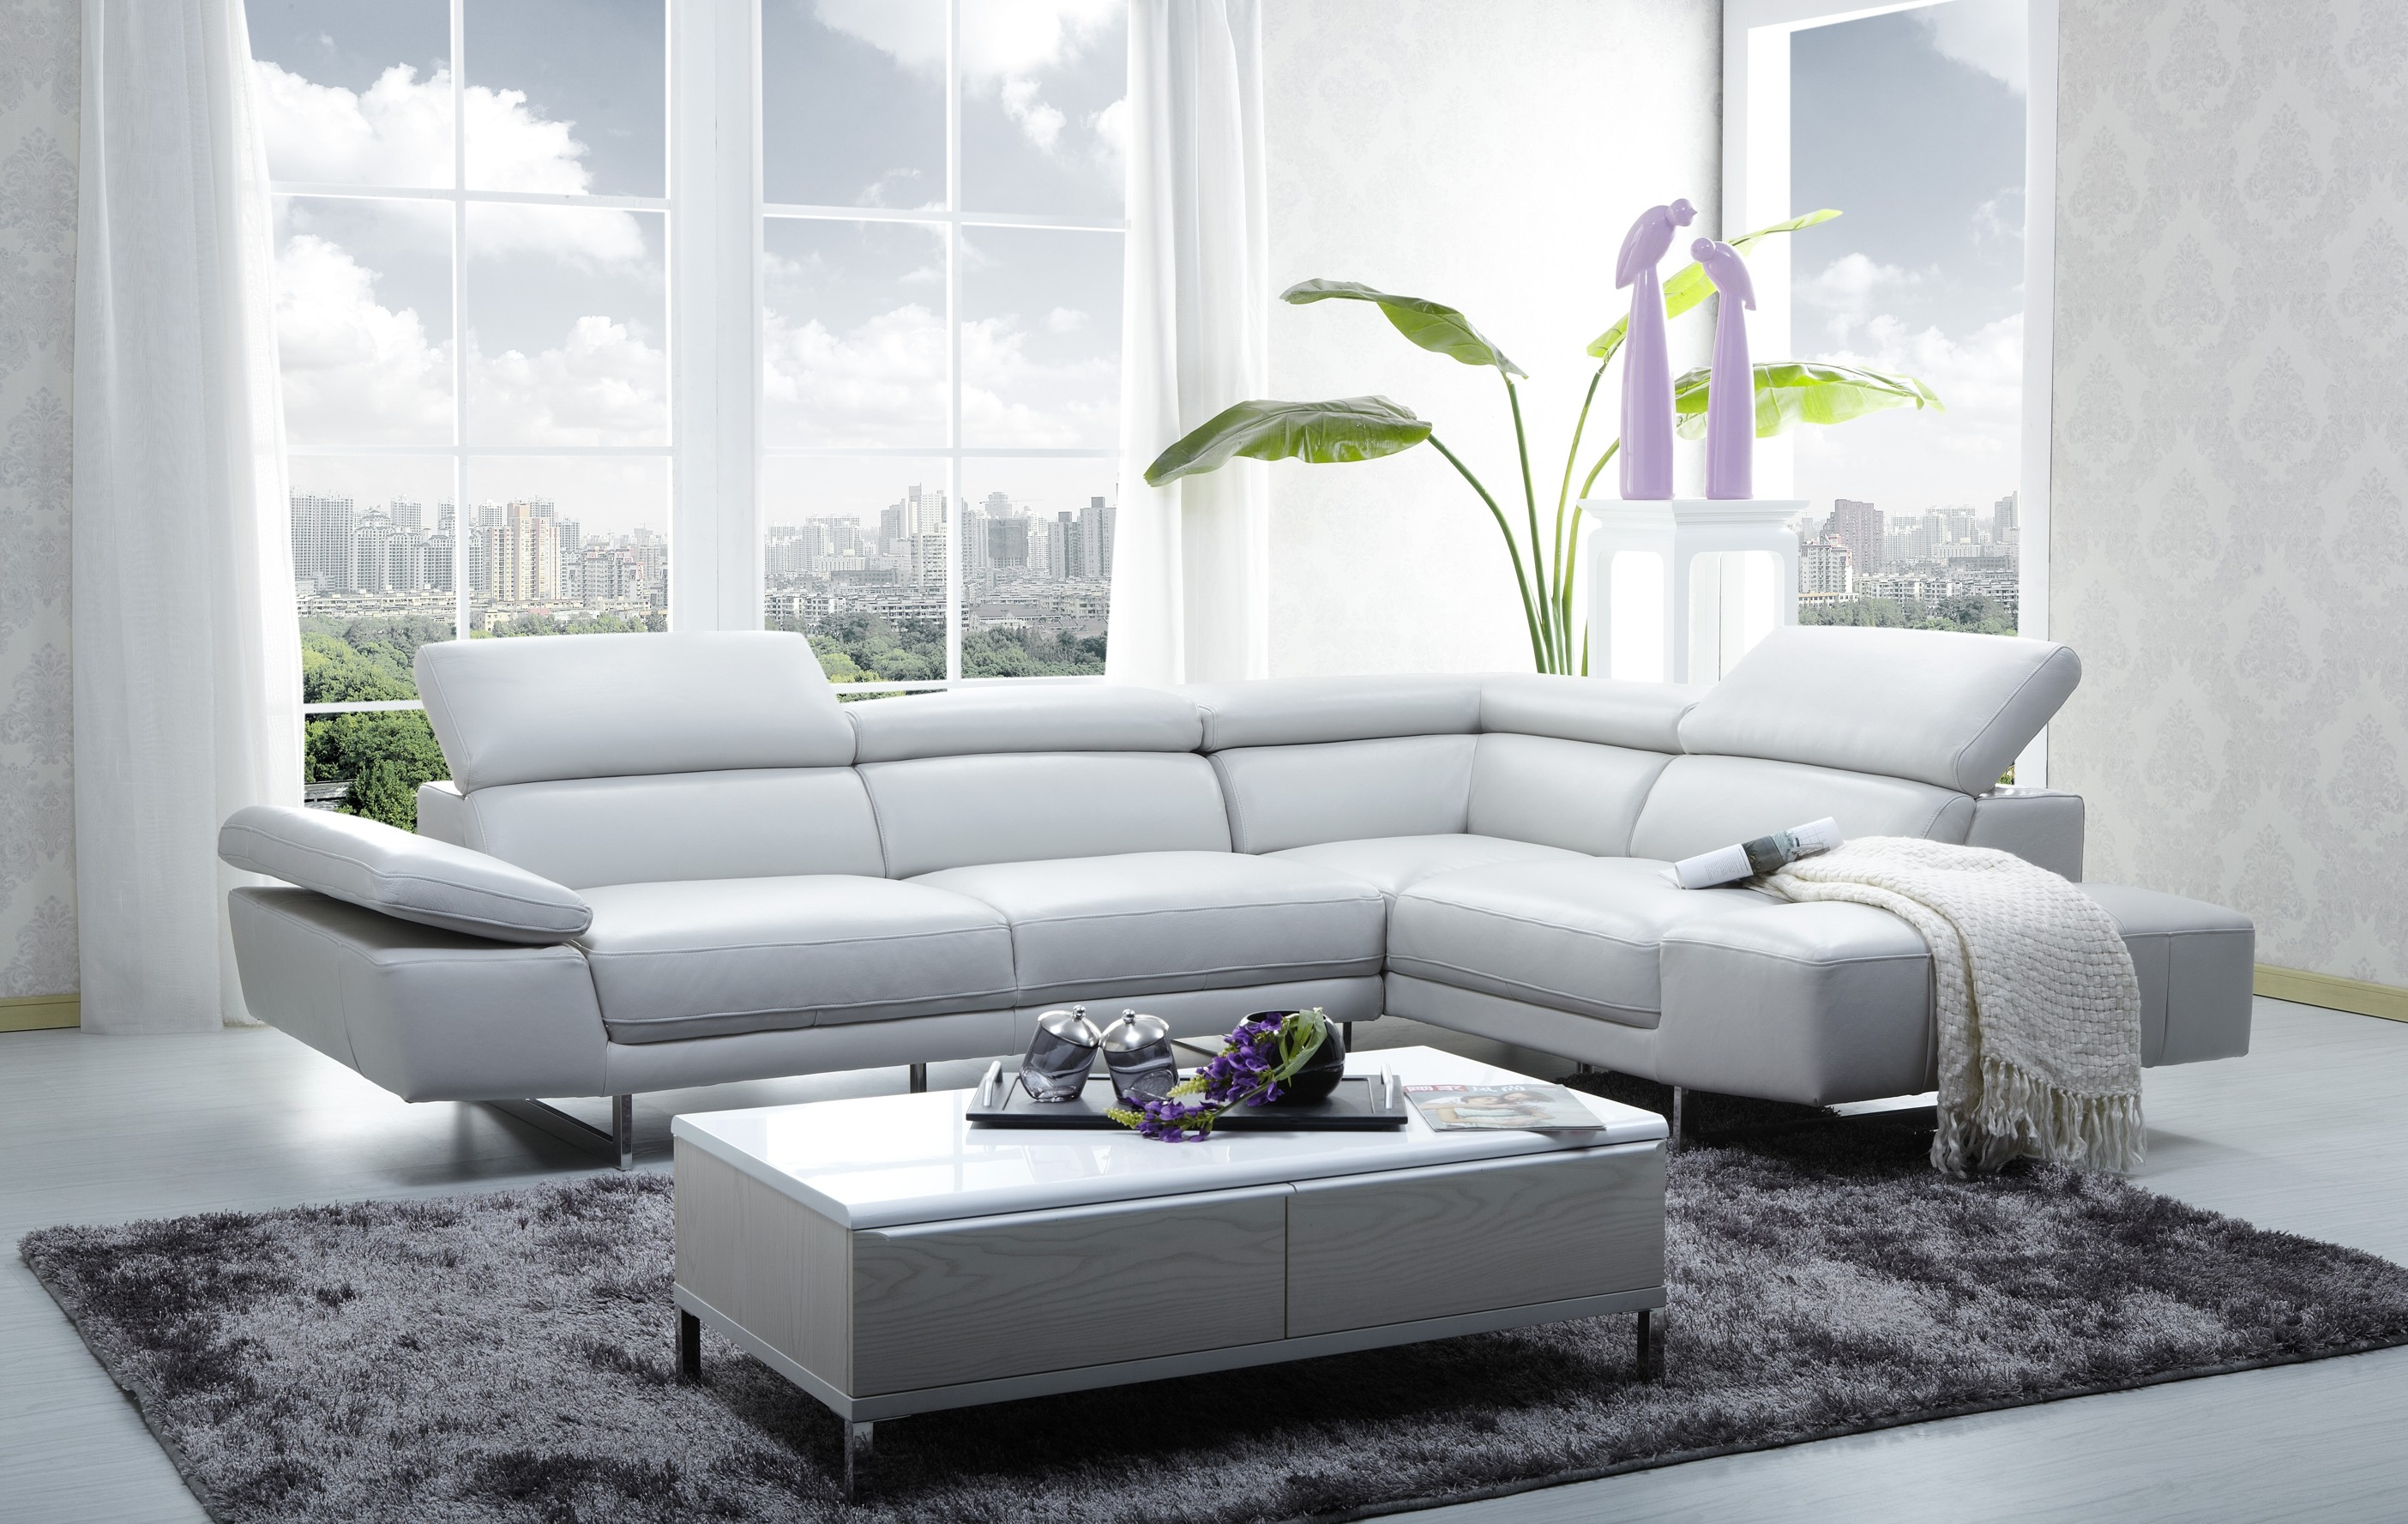 Interesting sectional couches for sale with cushions and wooden legs for home furniture ideas with cheap sectional couches for sale